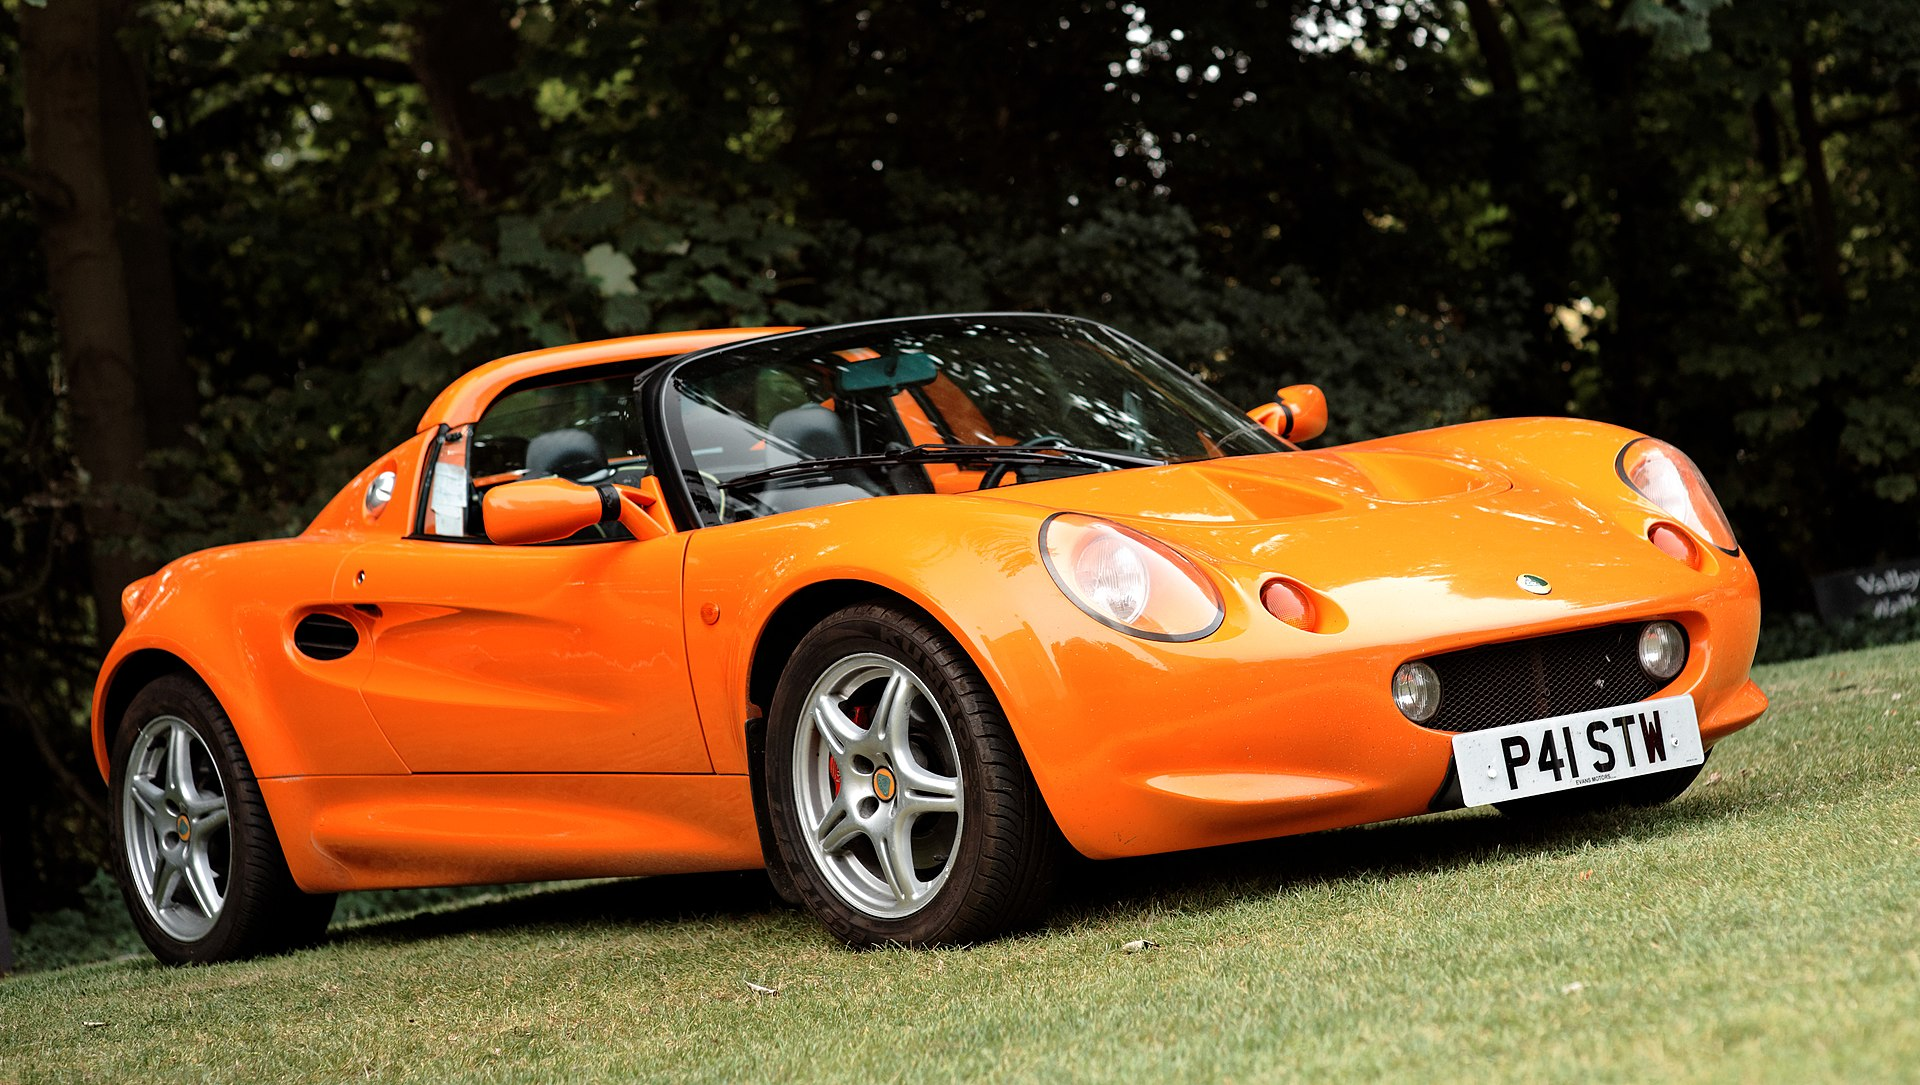 Lotus Elise S1 20th Anniversary 1995-2015 1920px-Lotus_Elise_Series_1